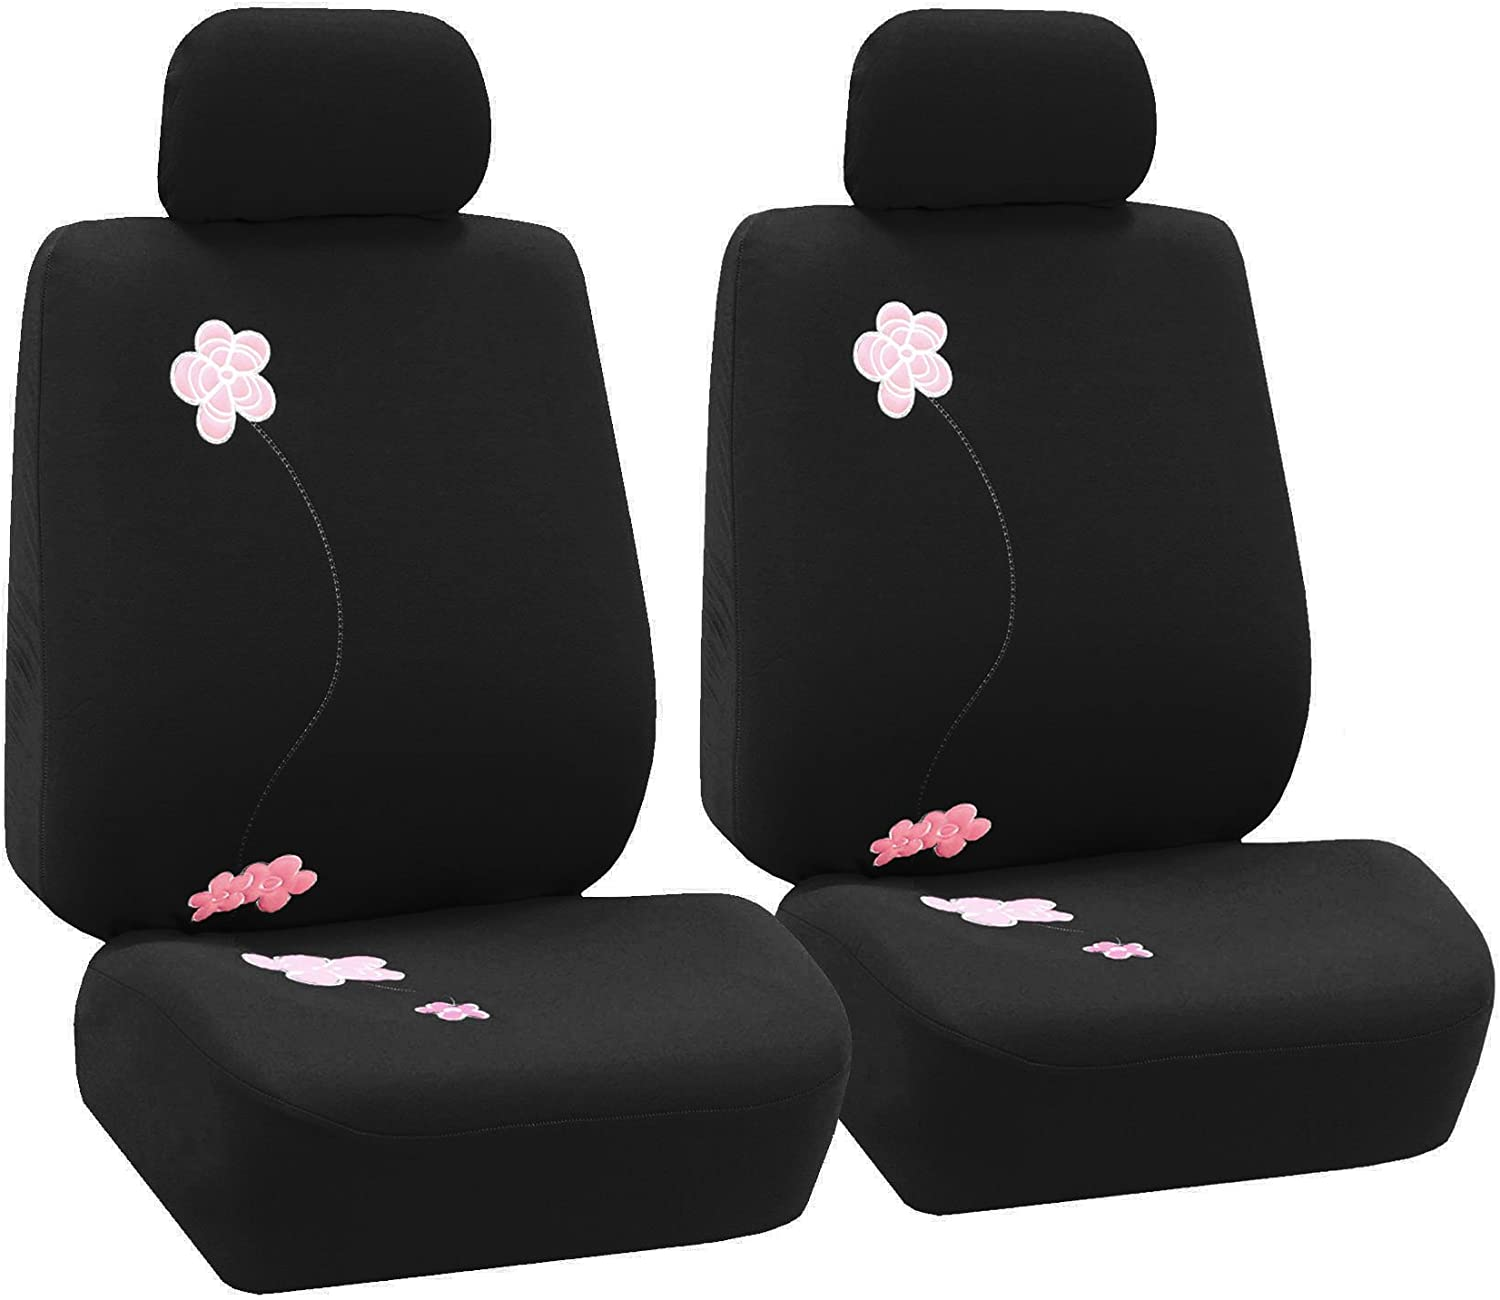 FH Group FB053BLACK102 Seat Cover (Flower Embroidery Airbag Compatible (Set of 2) Black)